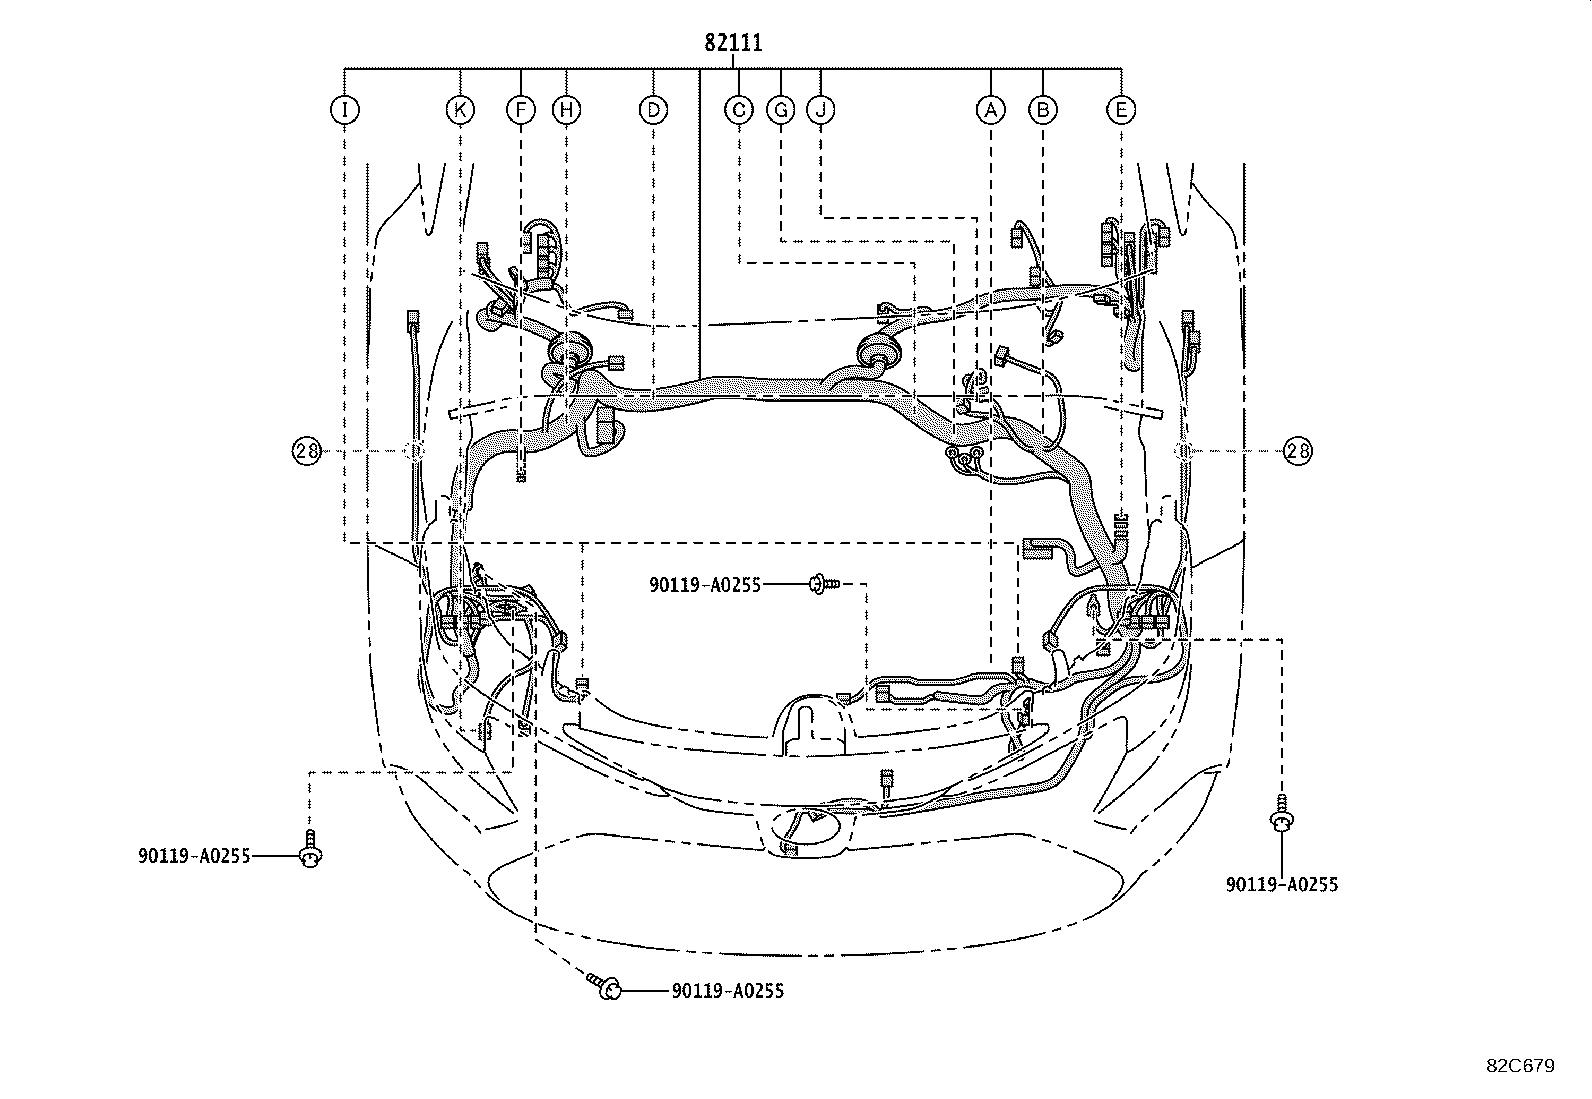 Toyota Corolla Wire, rear window, no. 2. Engine, room, cvt